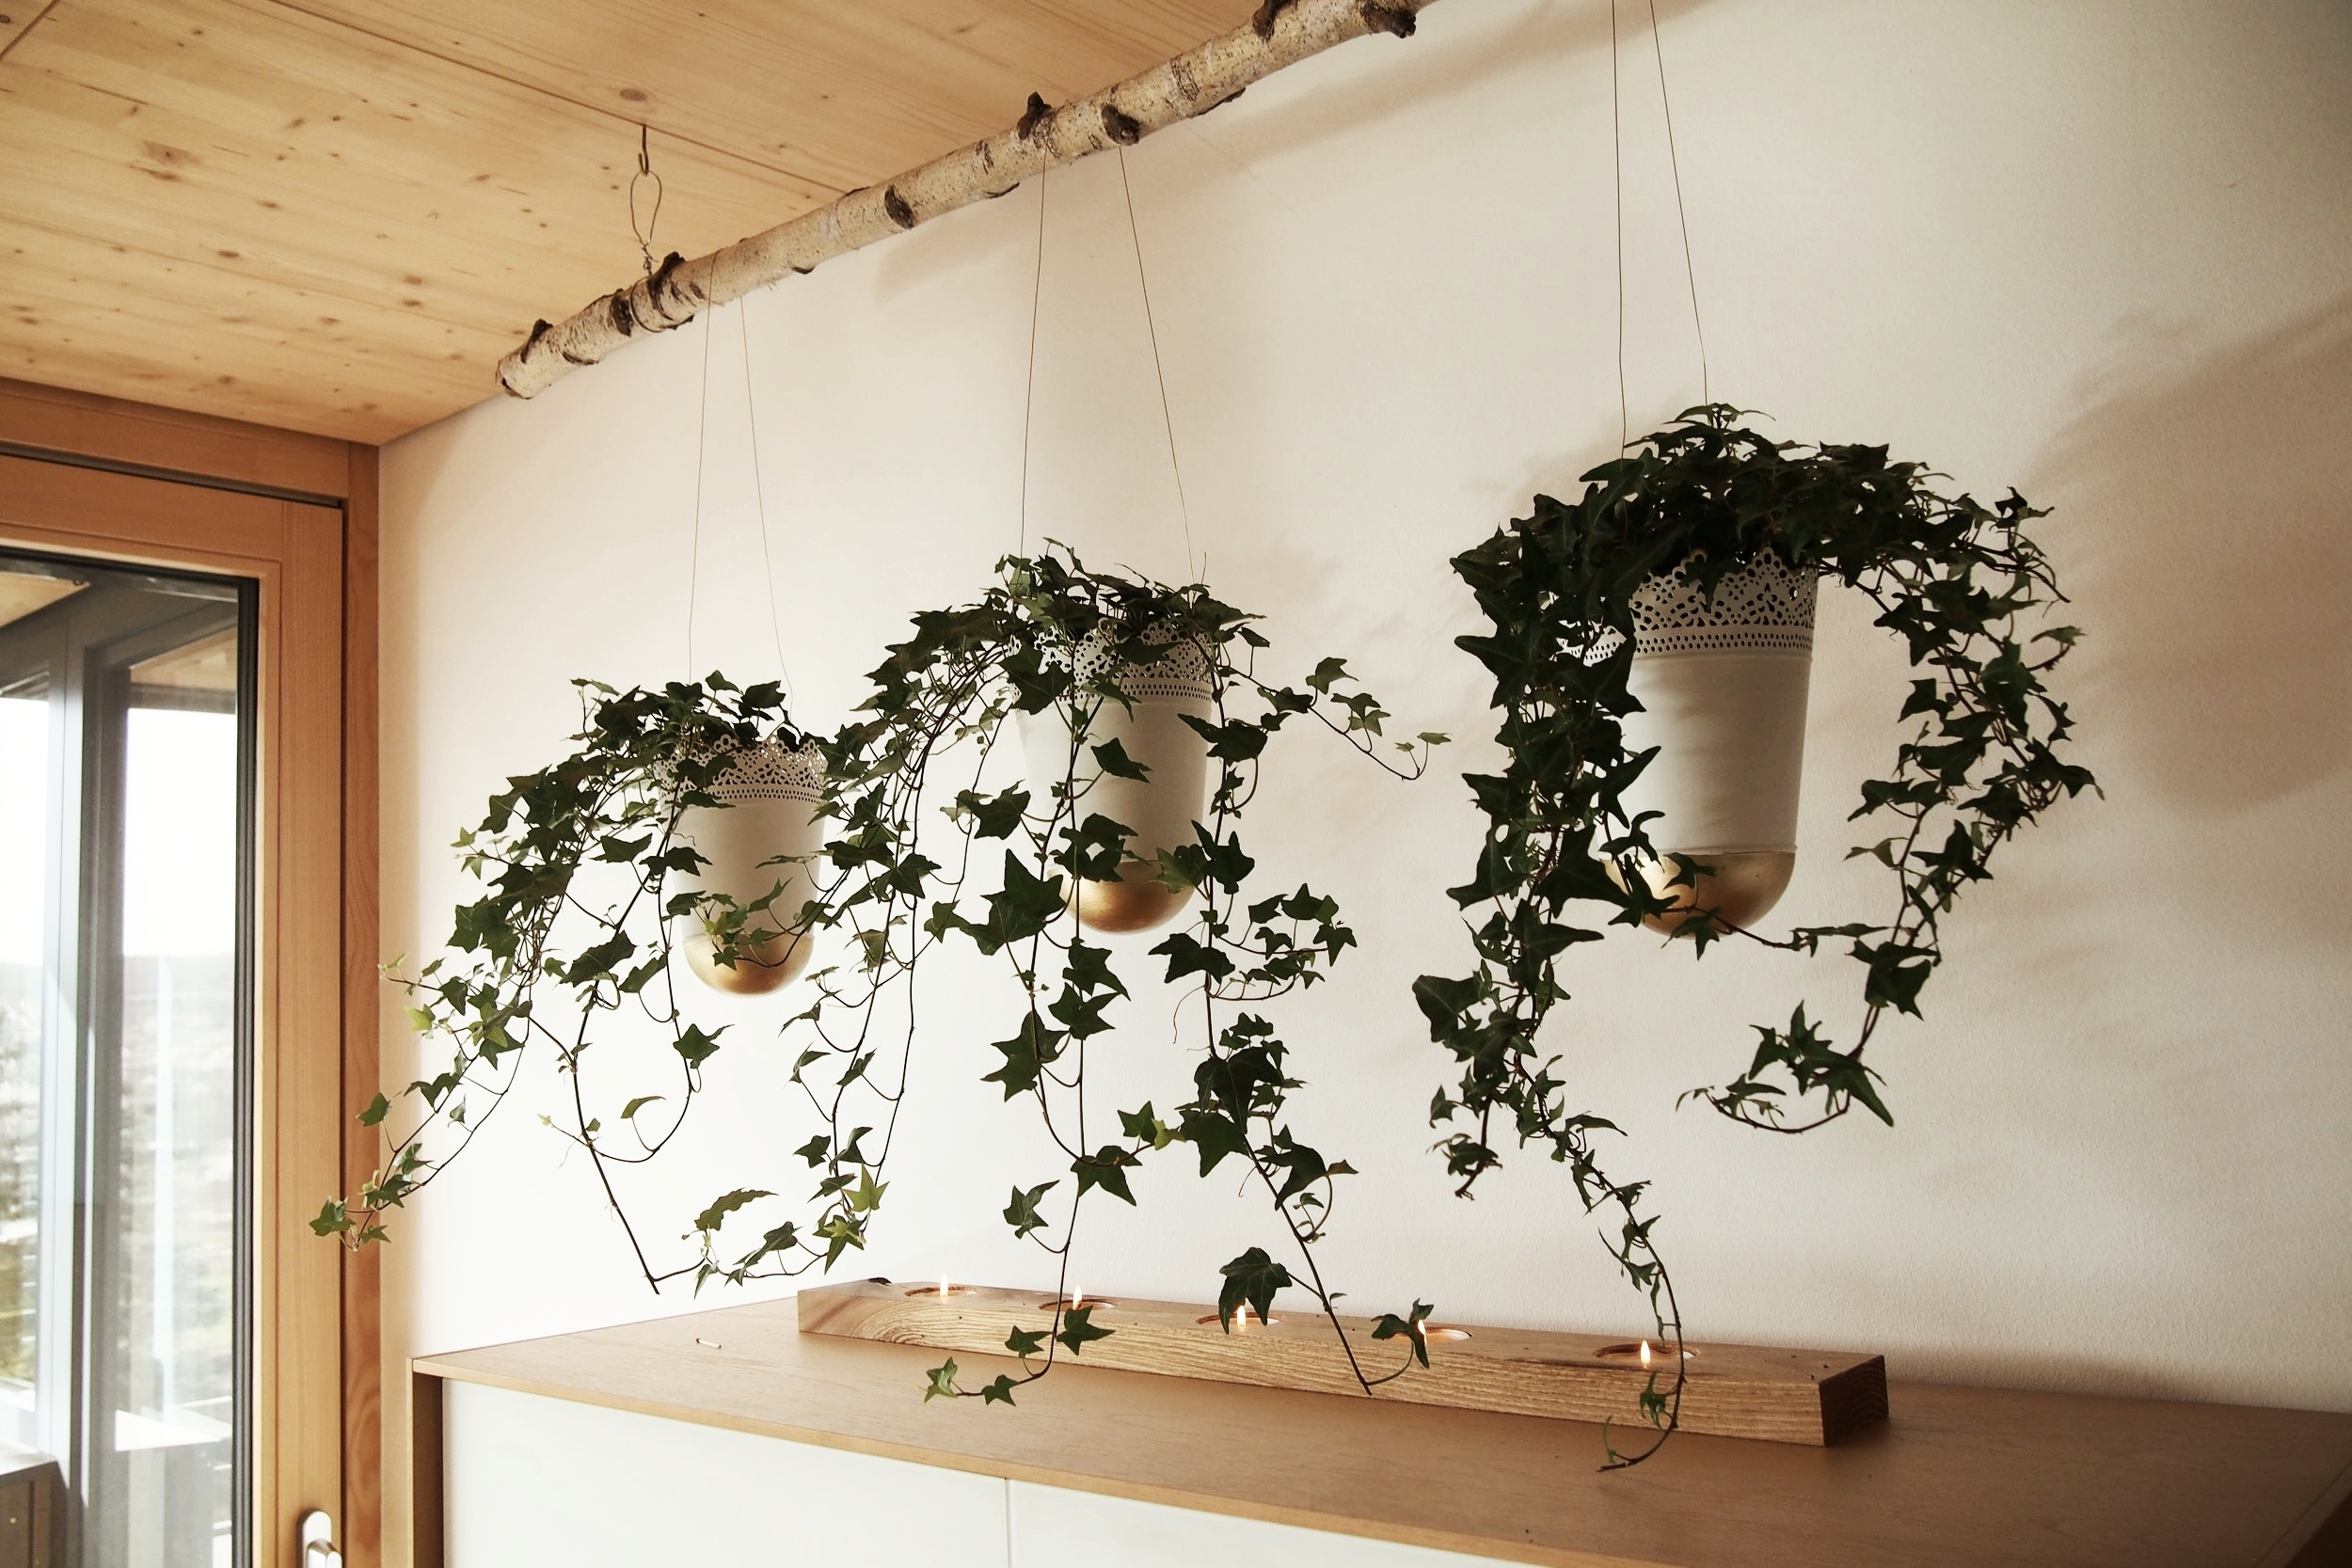 diy hanging planter on a wooden branch - easy, affordable, and simple.